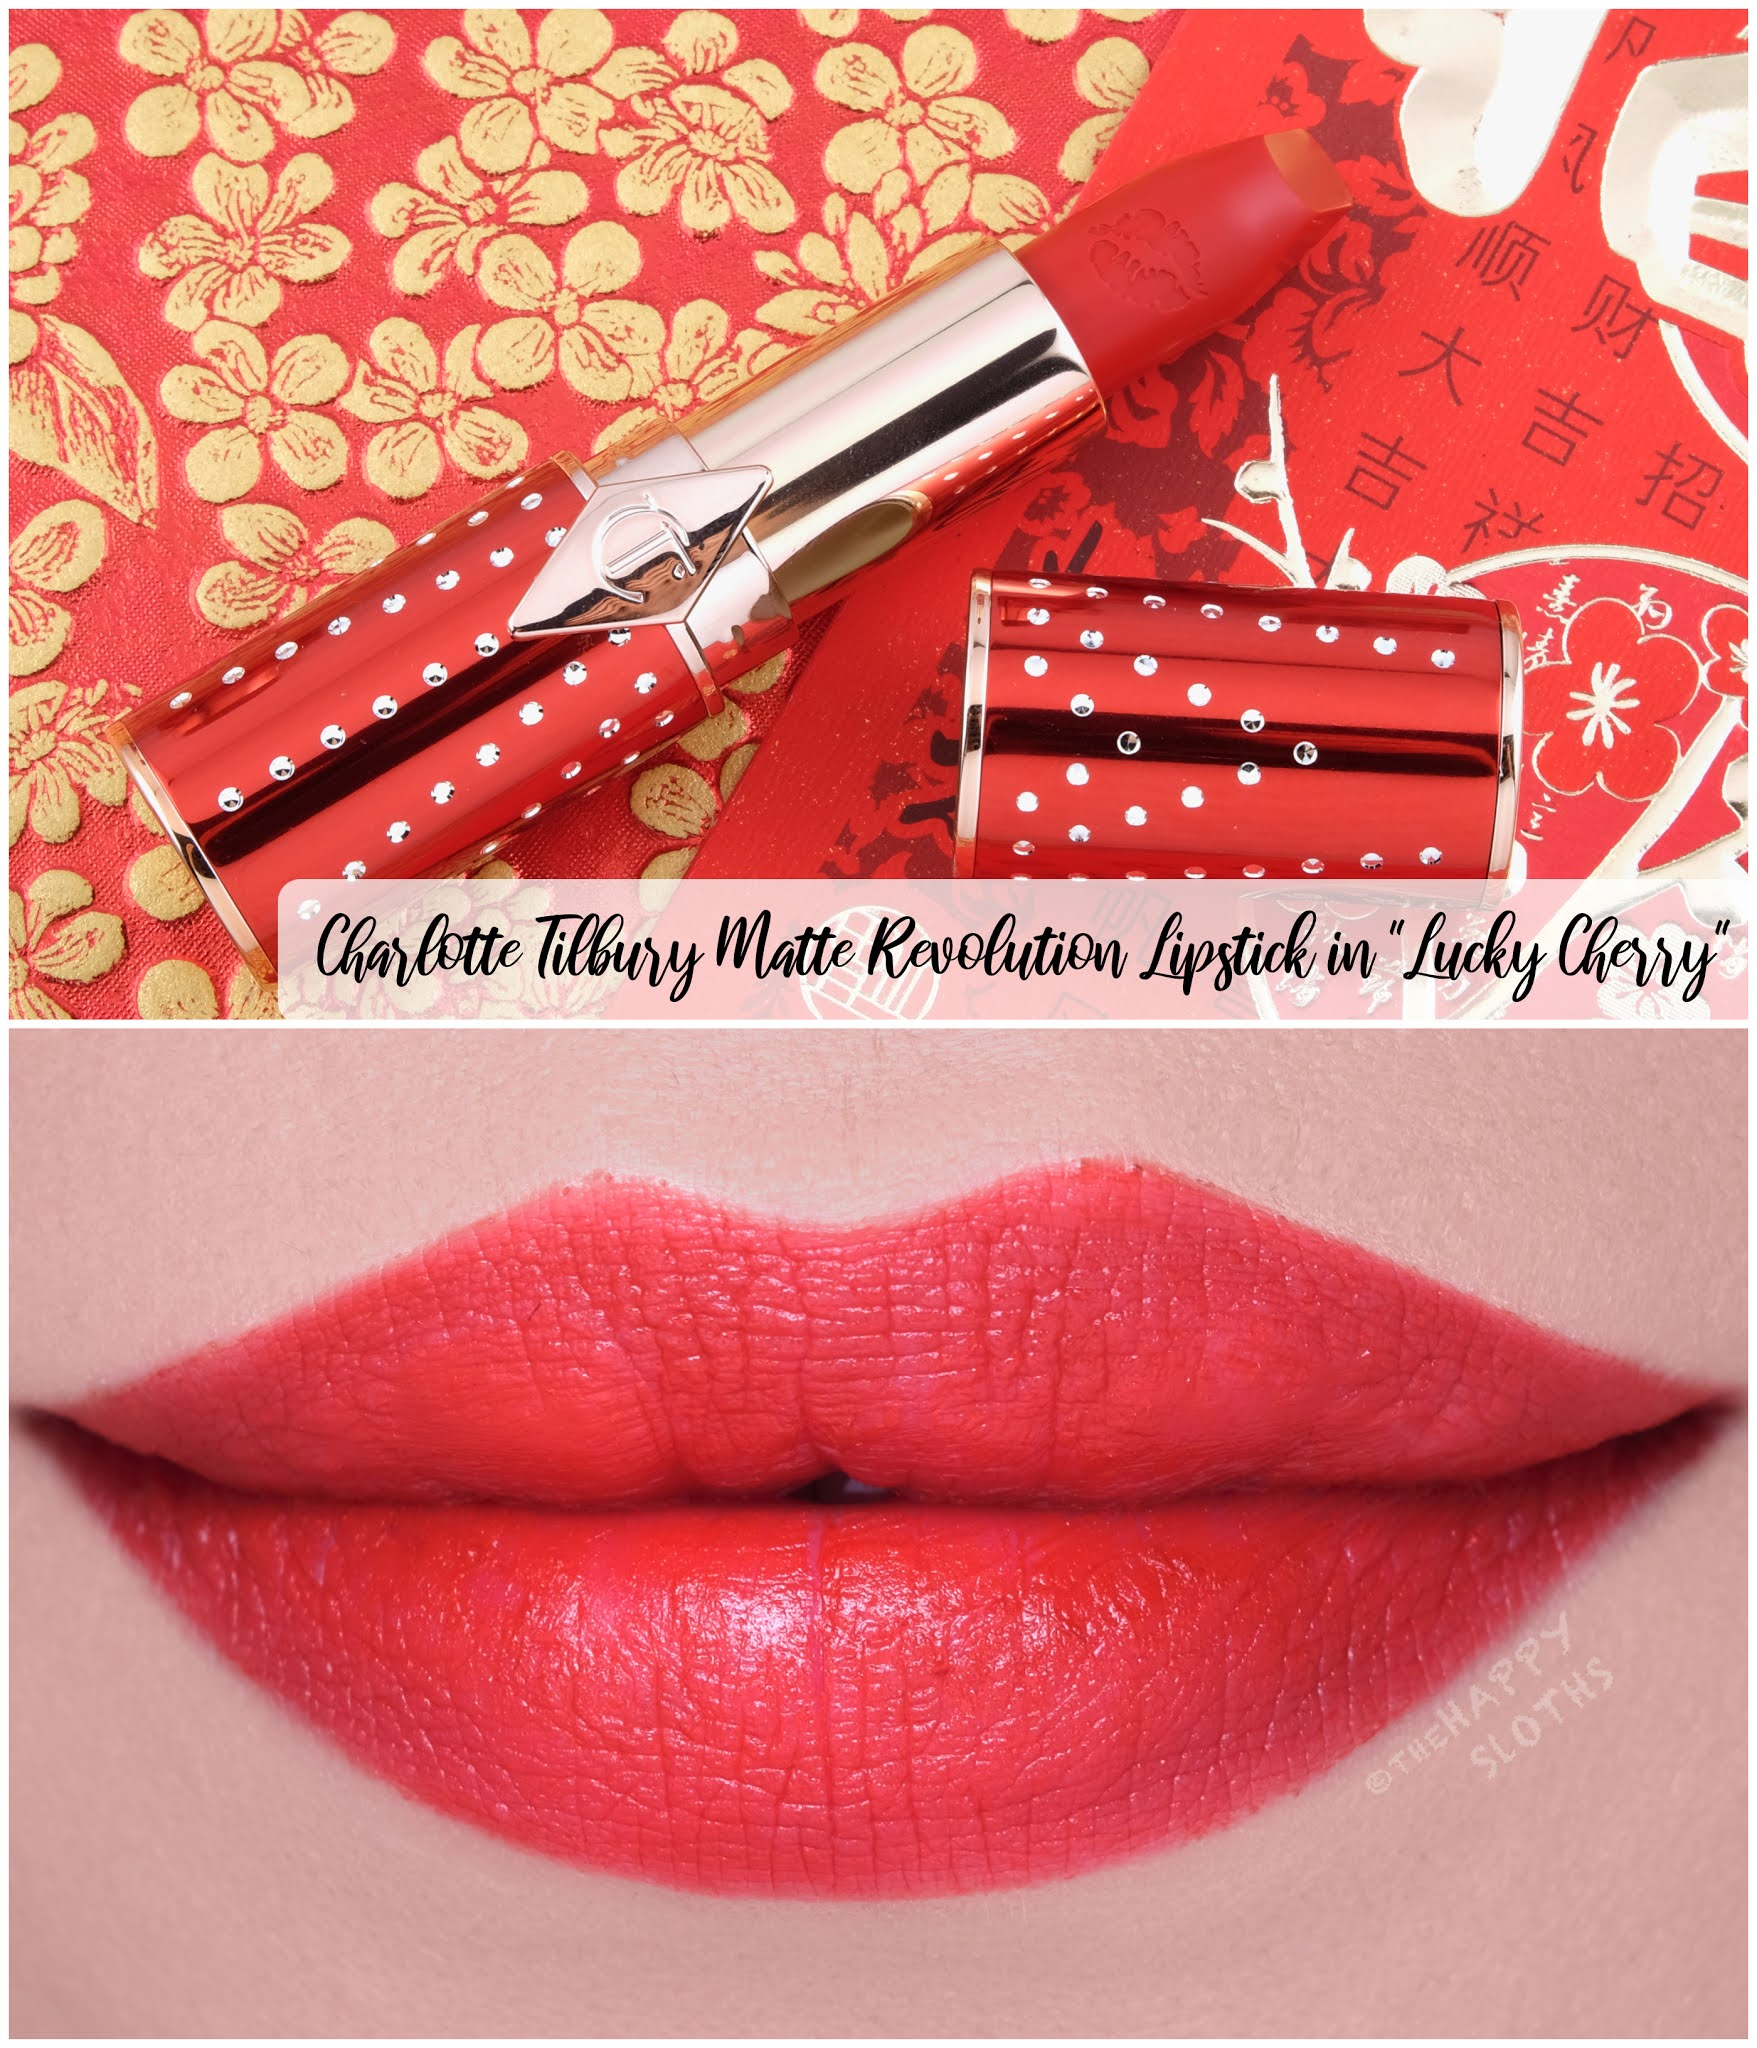 "Charlotte Tilbury | Lunar New Year Matte Revolution Lipstick in ""Lucky Cherry"": Review and Swatches"